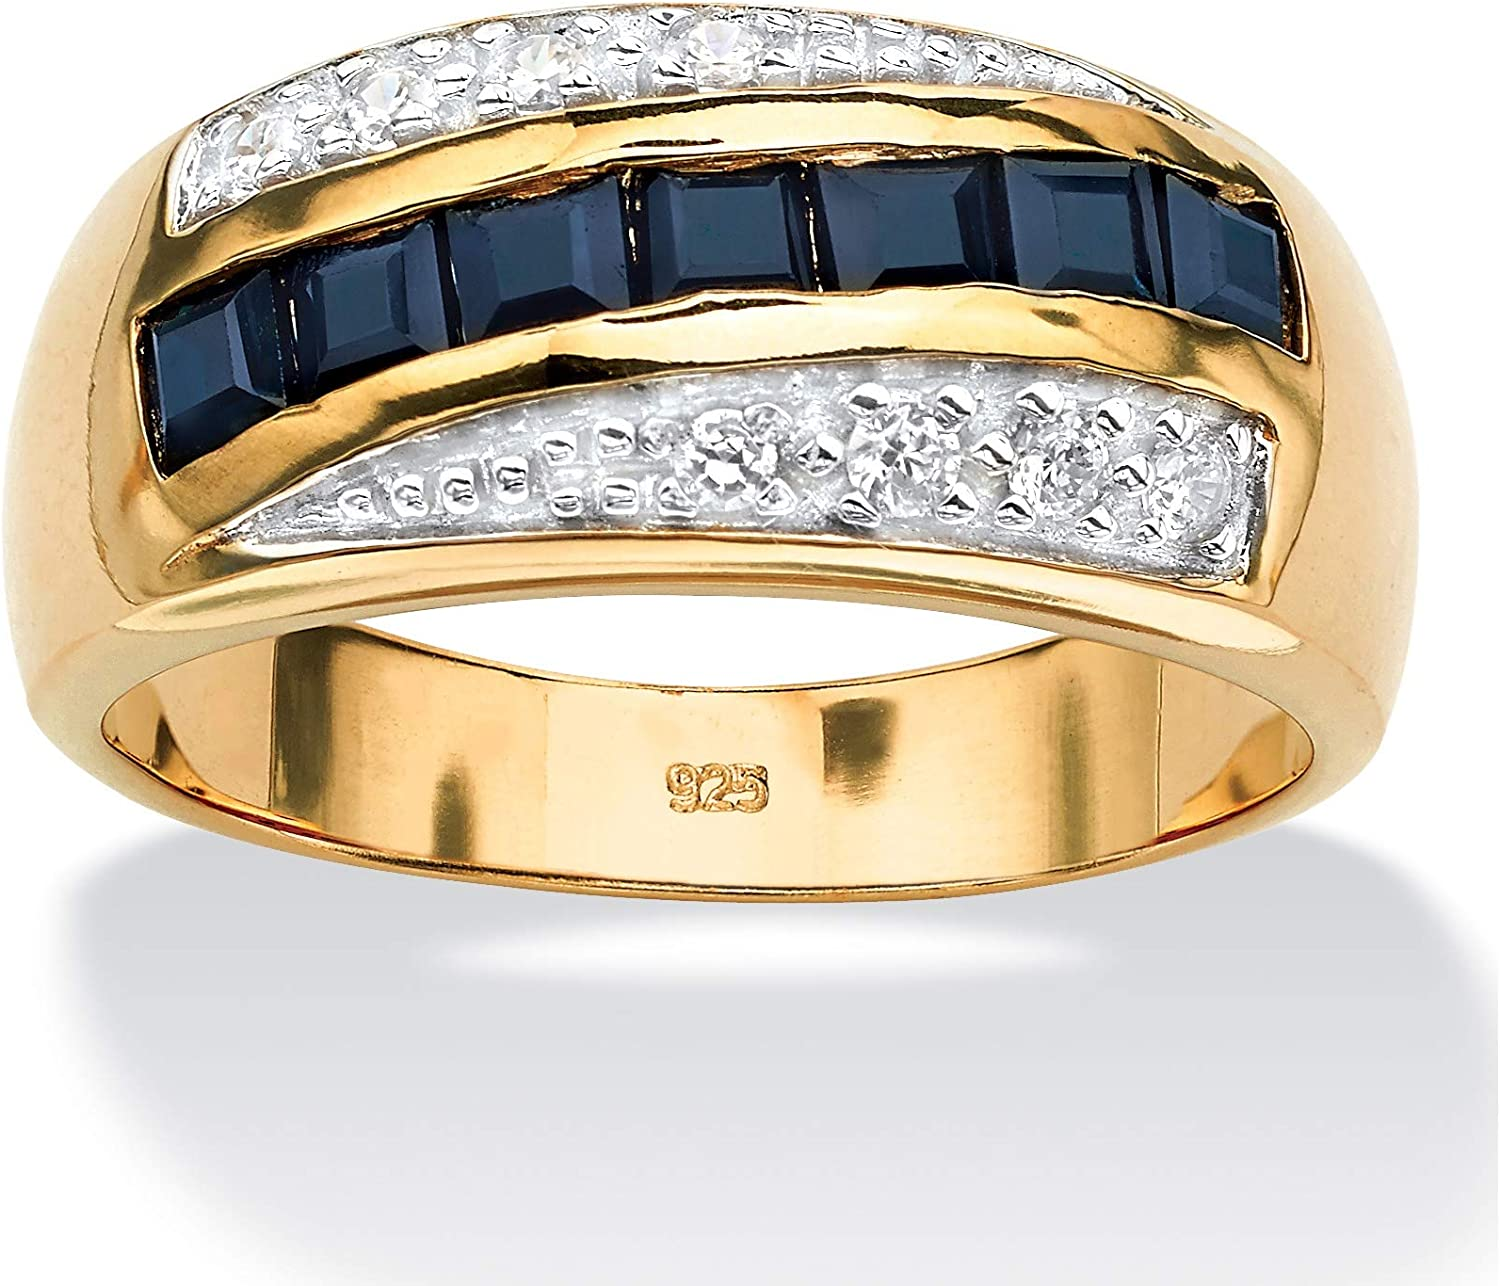 Men's 18K Yellow Gold over Sterling Silver Square Cut Genuine Blue Sapphire and Round Cubic Zirconia Ring